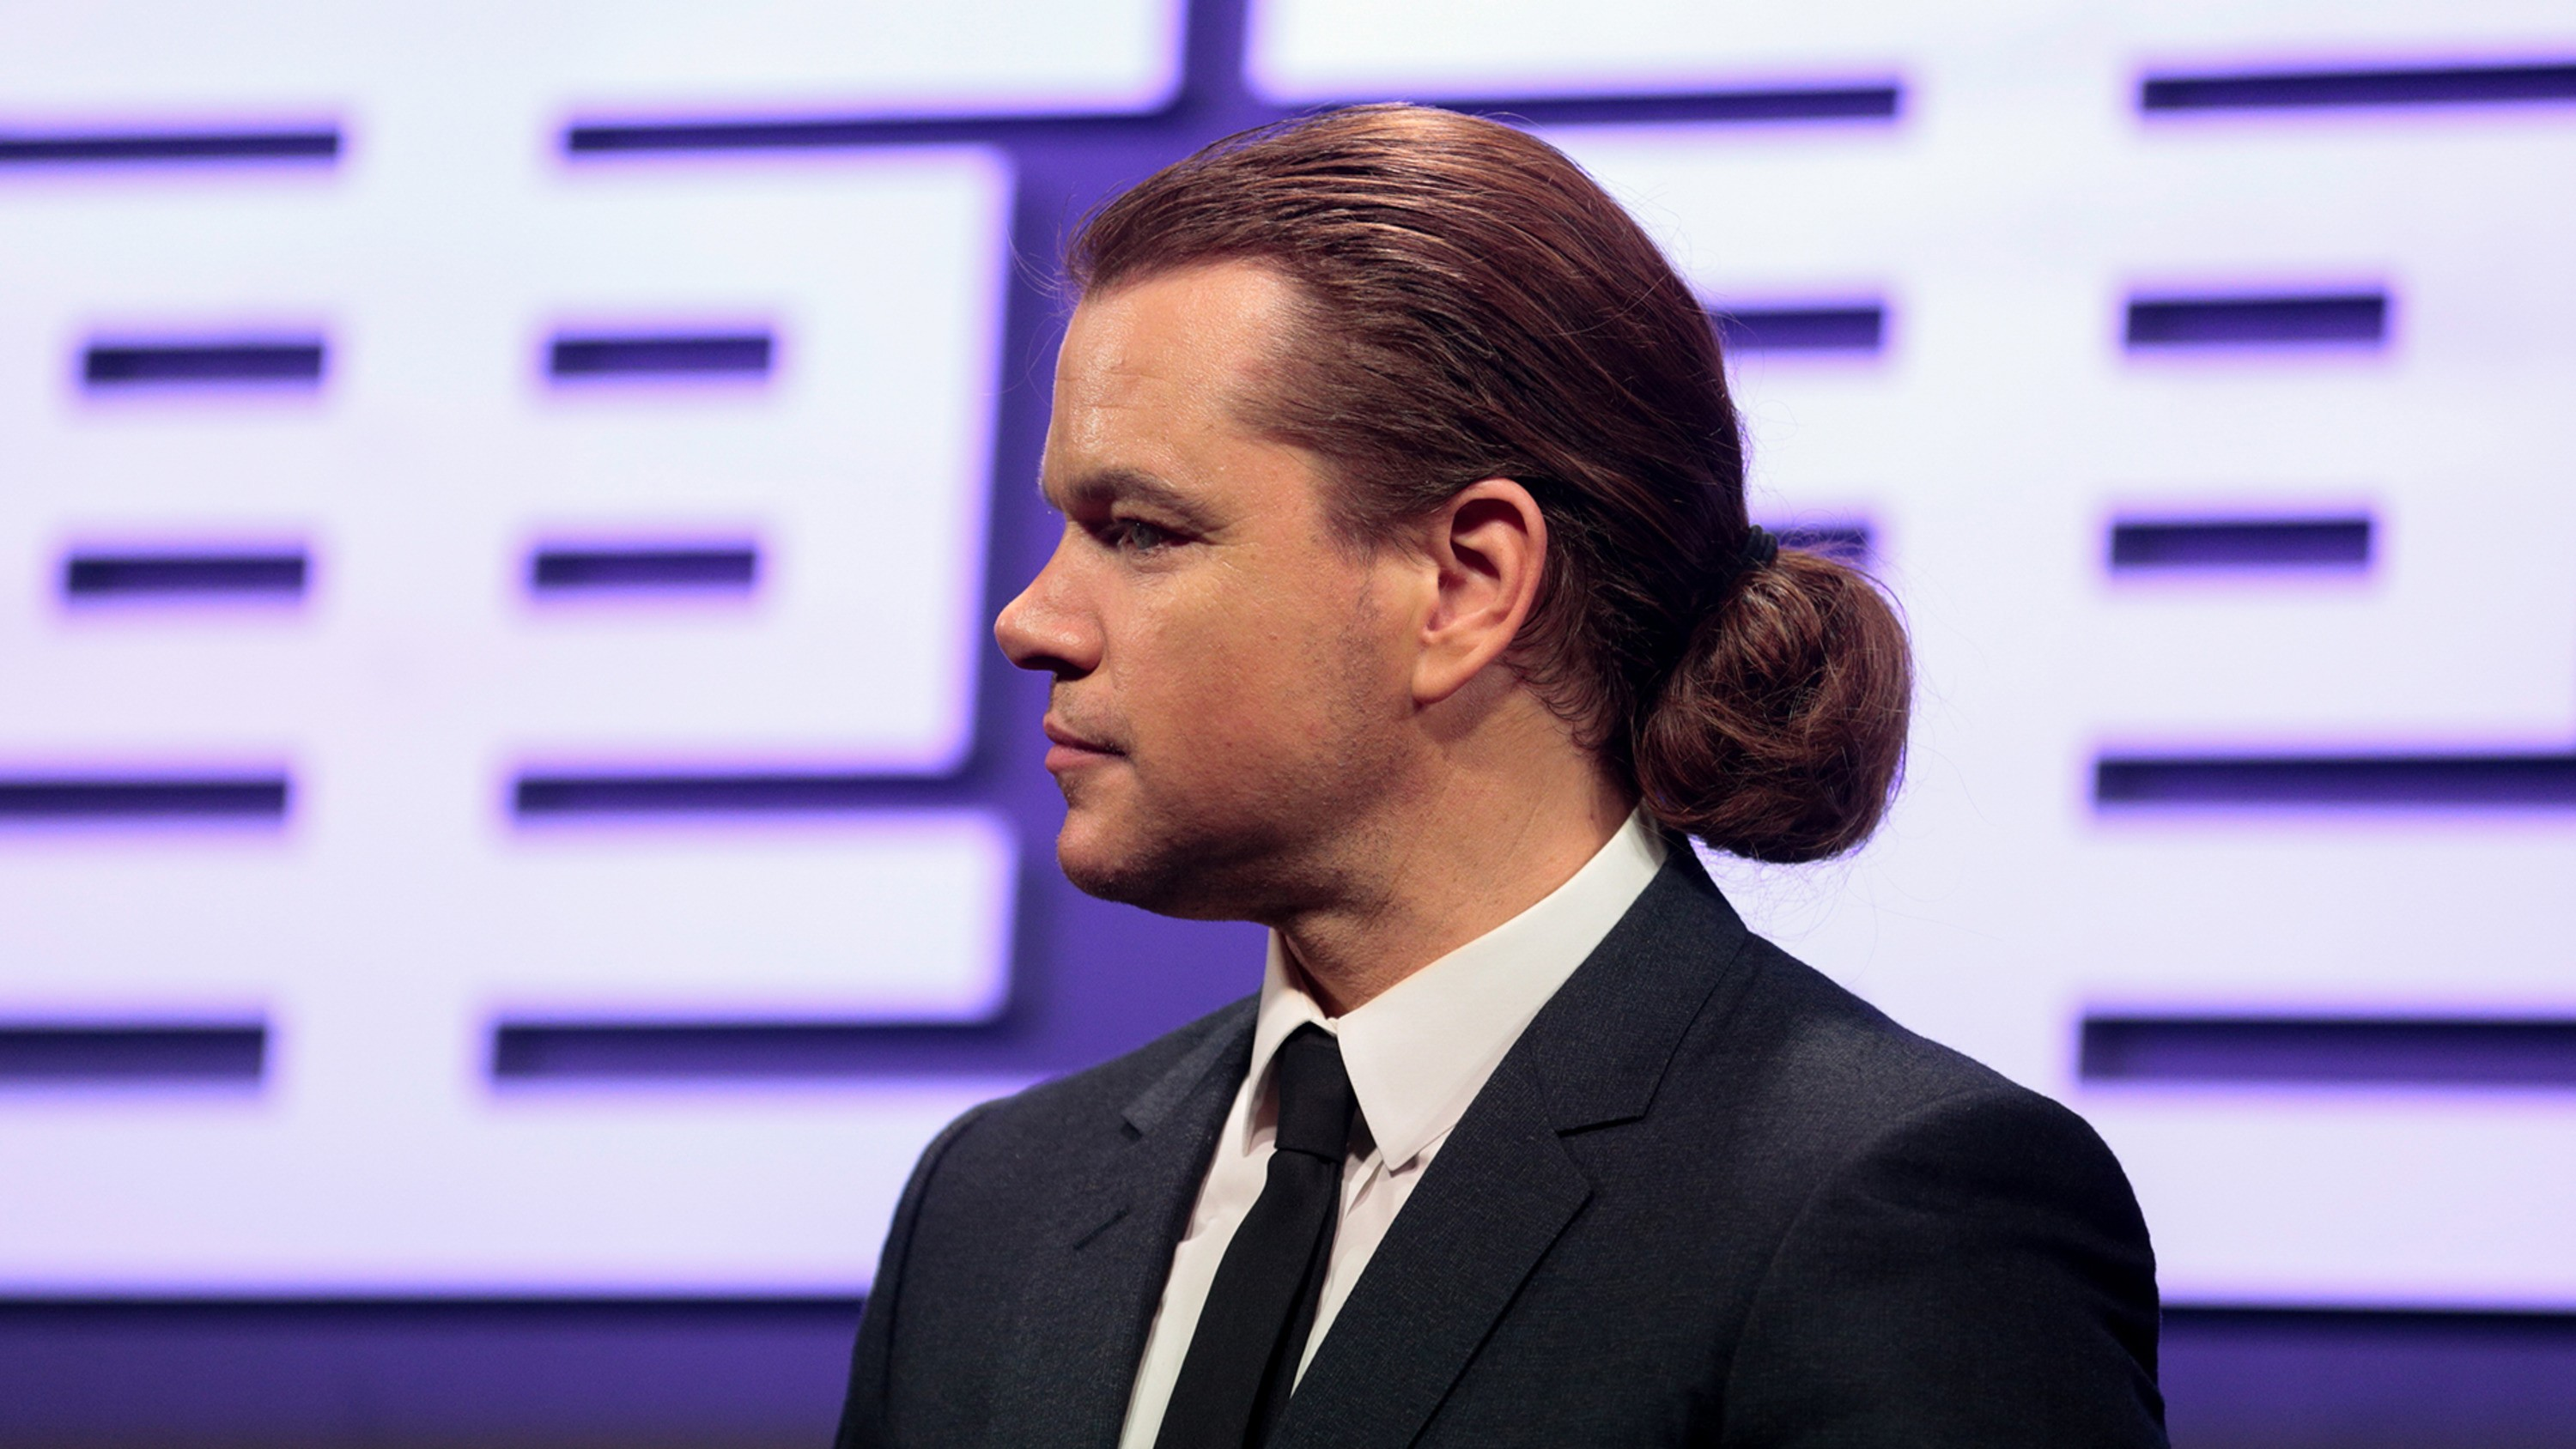 Matt Damon bun style for 2021.